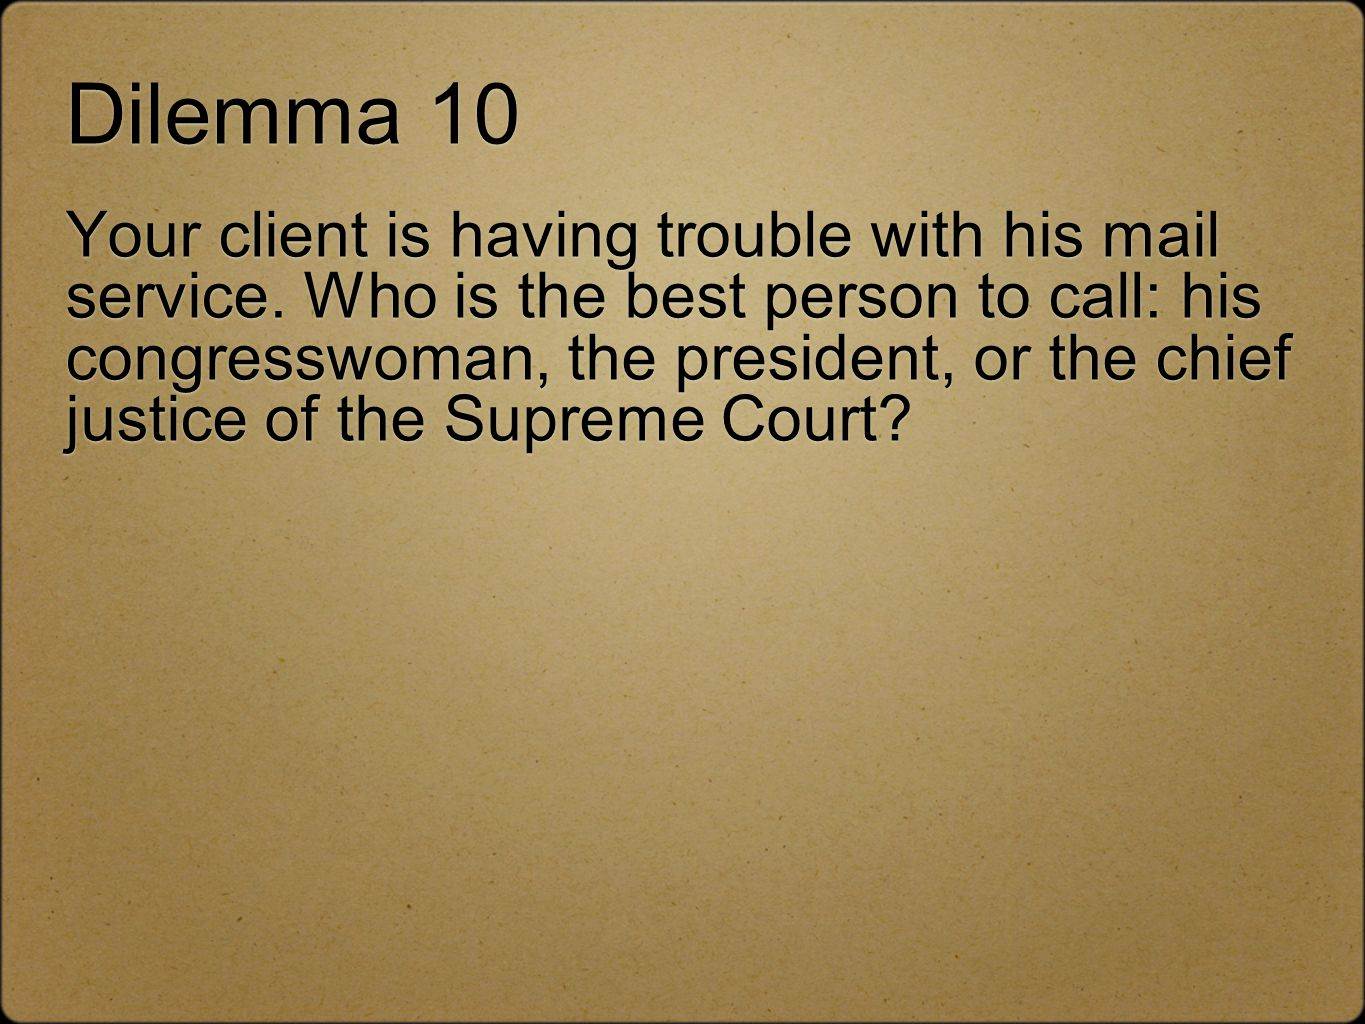 Dilemma 10 Your client is having trouble with his mail service. Who is the best person to call: his congresswoman, the president, or the chief justice